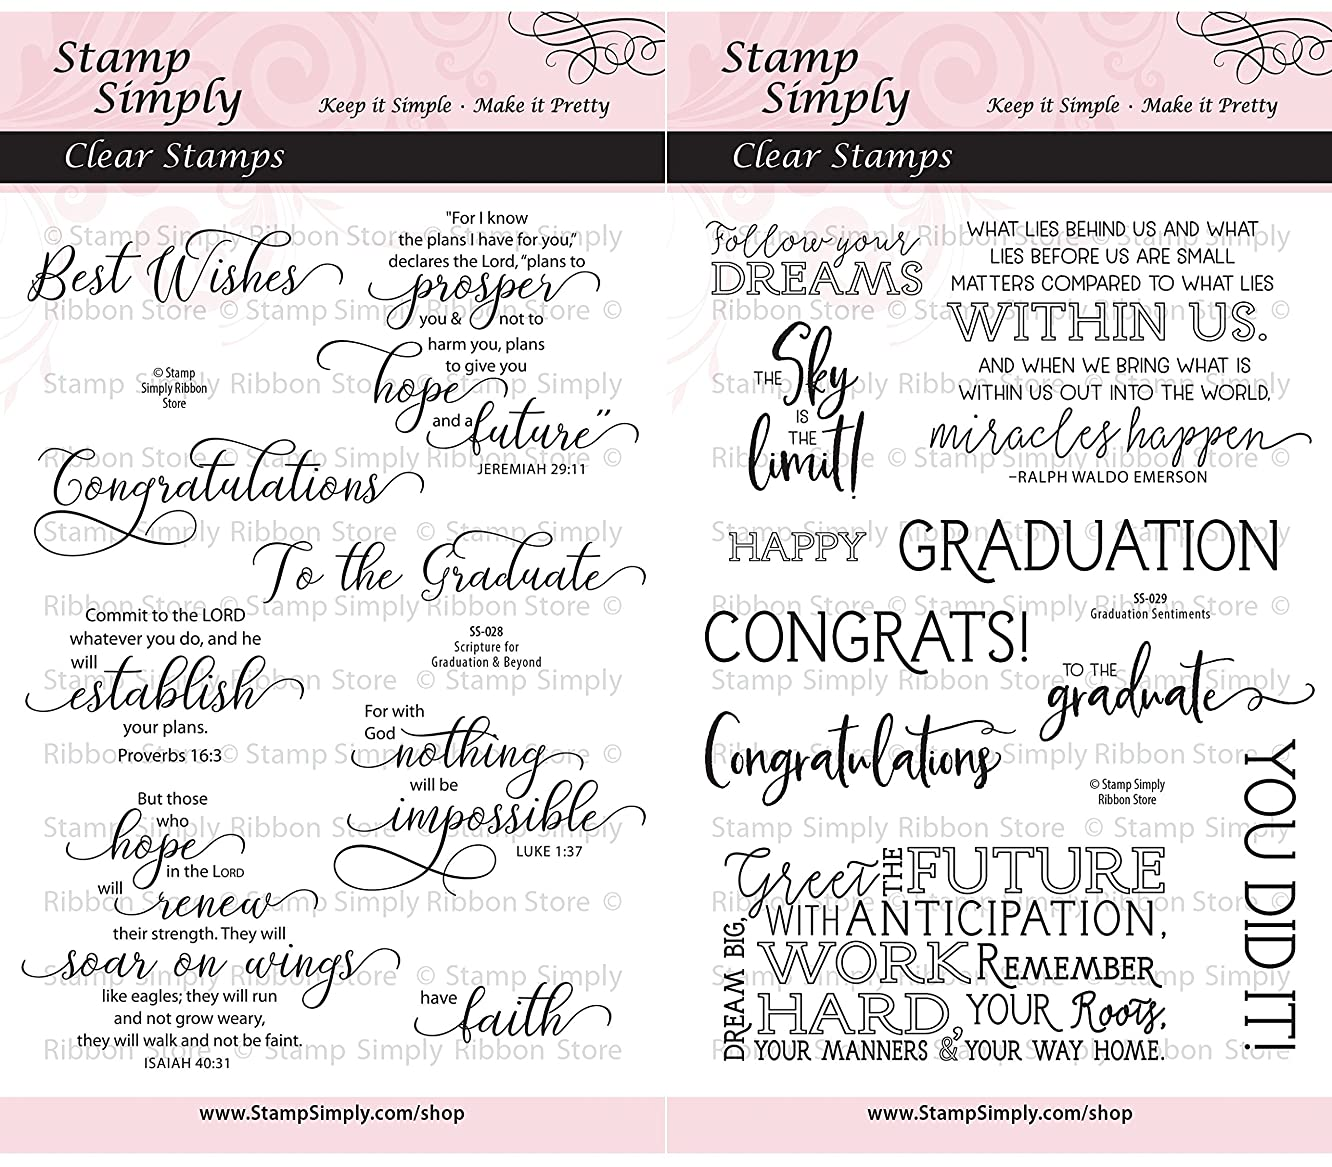 Stamp Simply Clear Stamps Graduation Congratulations Graduate Scripture Sentiments Christian Religious (2-Pack) 4x6 Inch Sheets - 18 Pieces